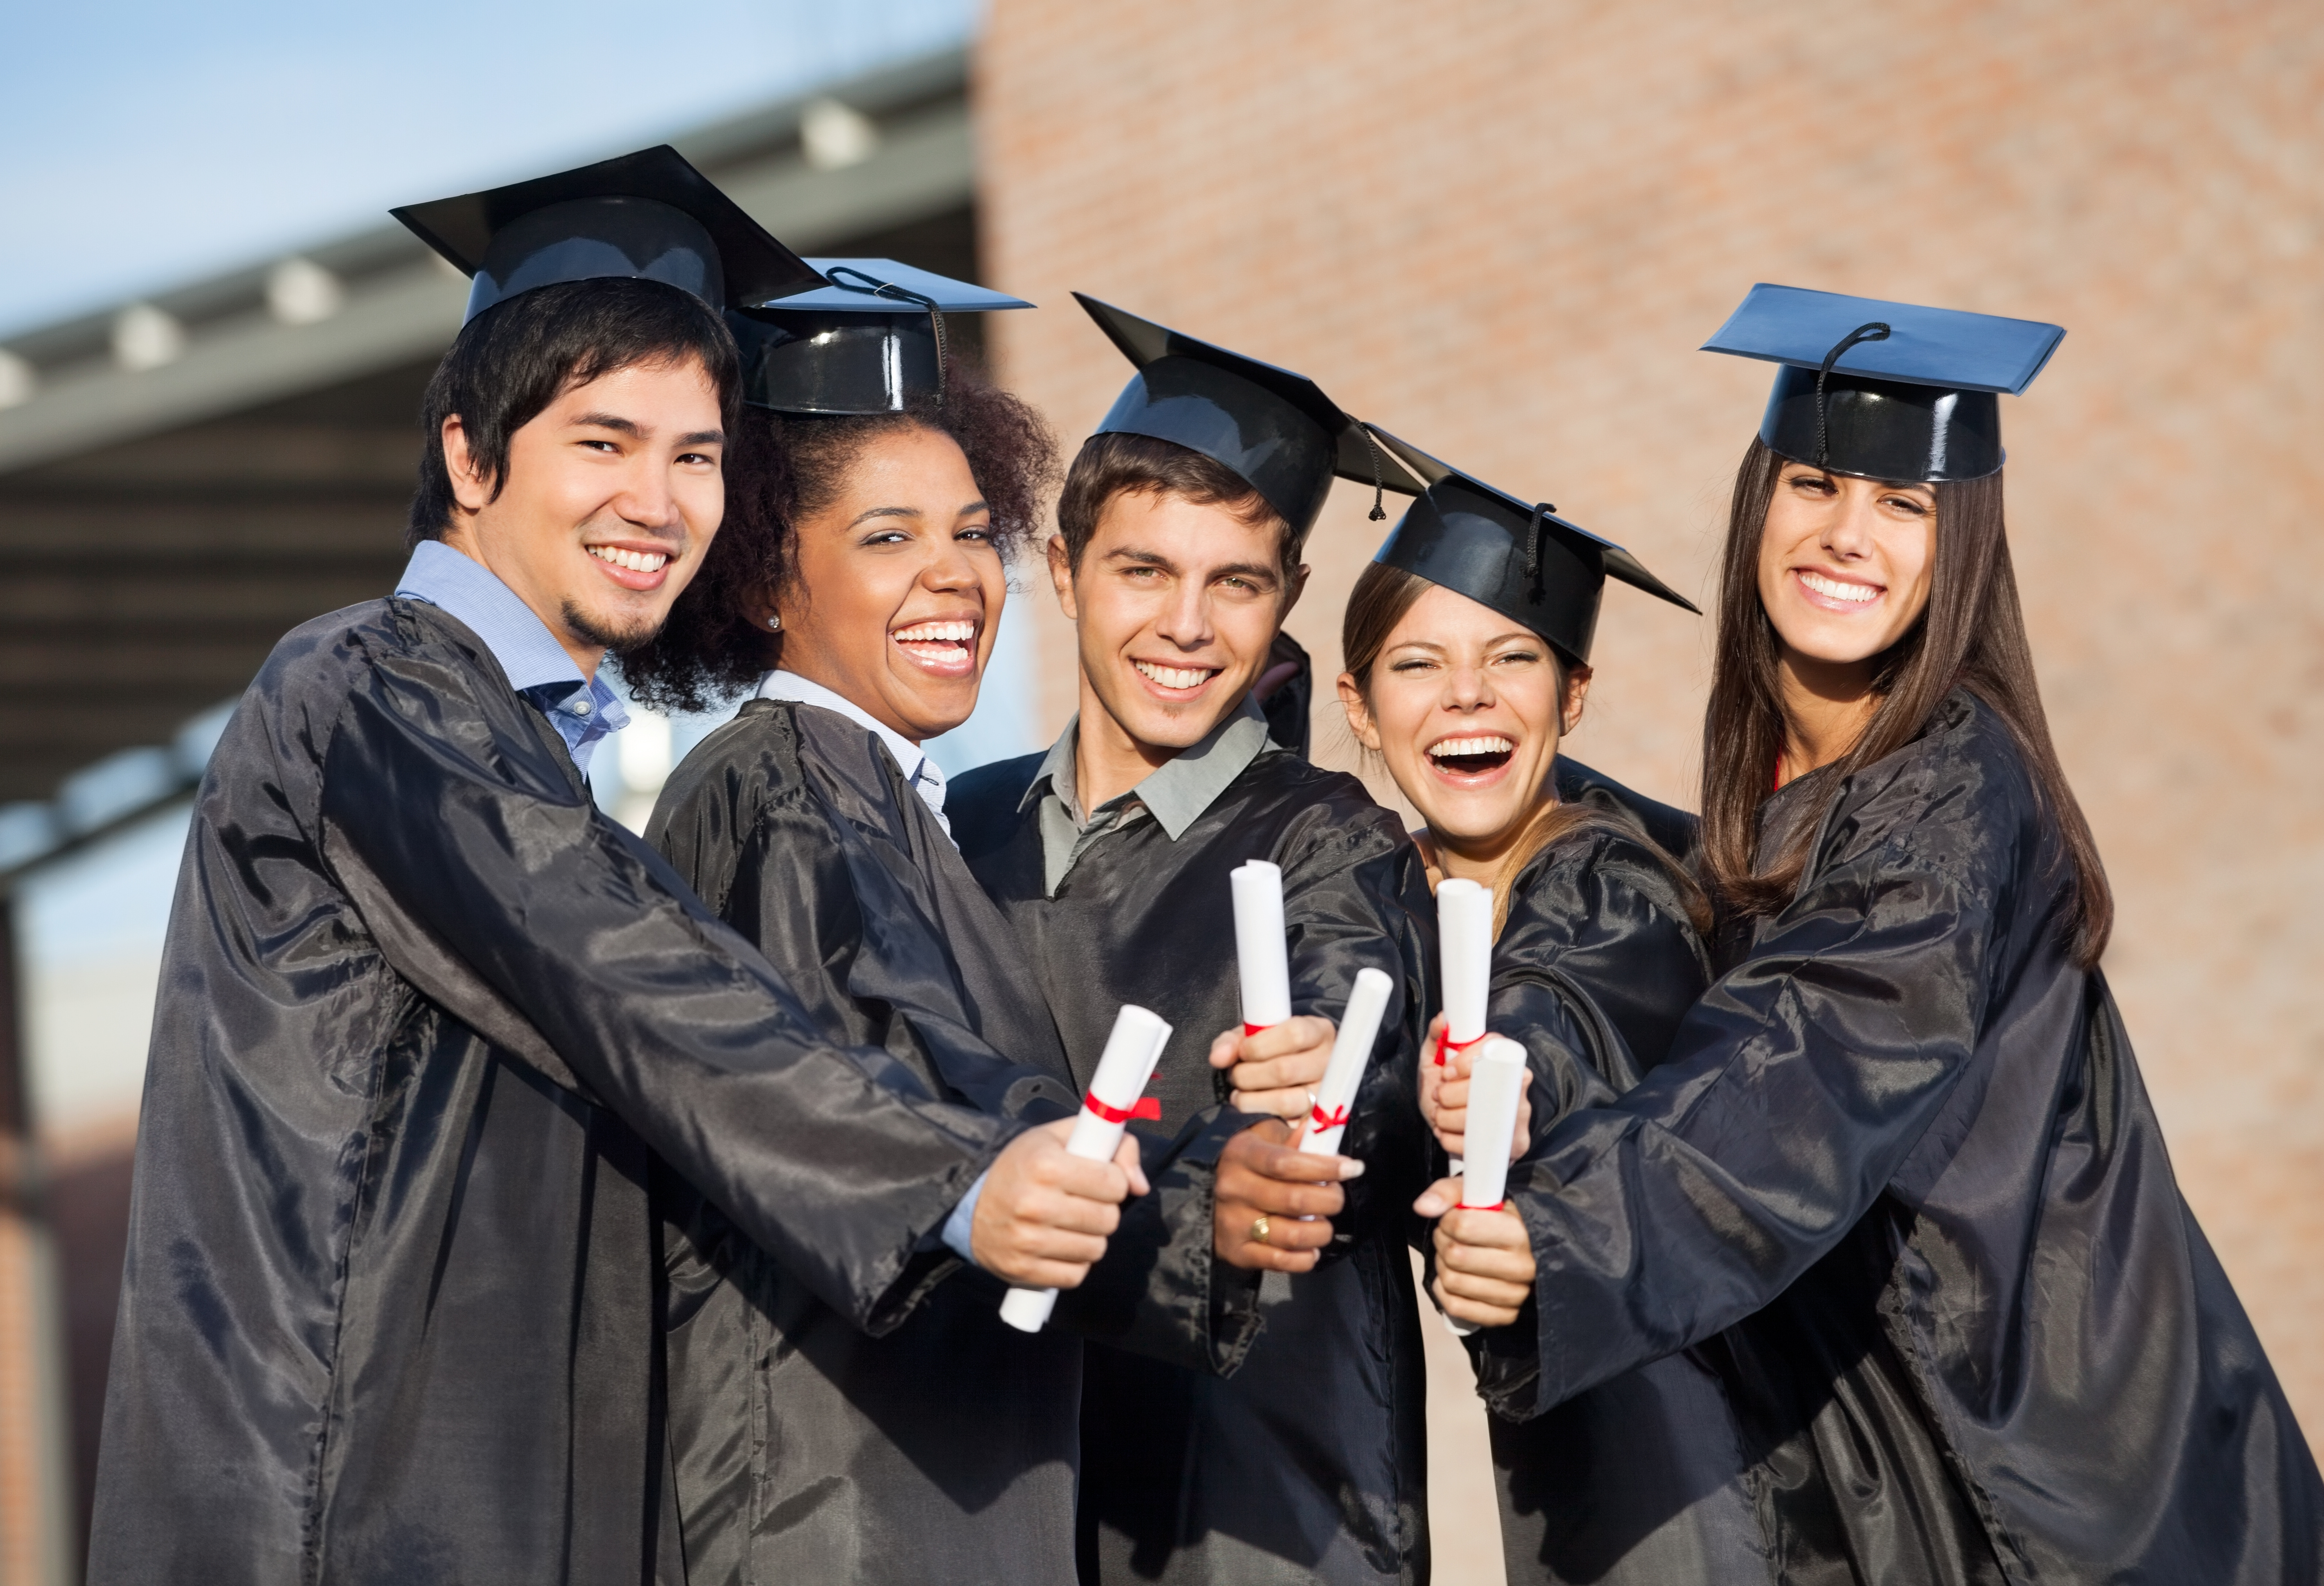 Students In Graduation Gowns Showing Diplomas On Campus - Federal ...